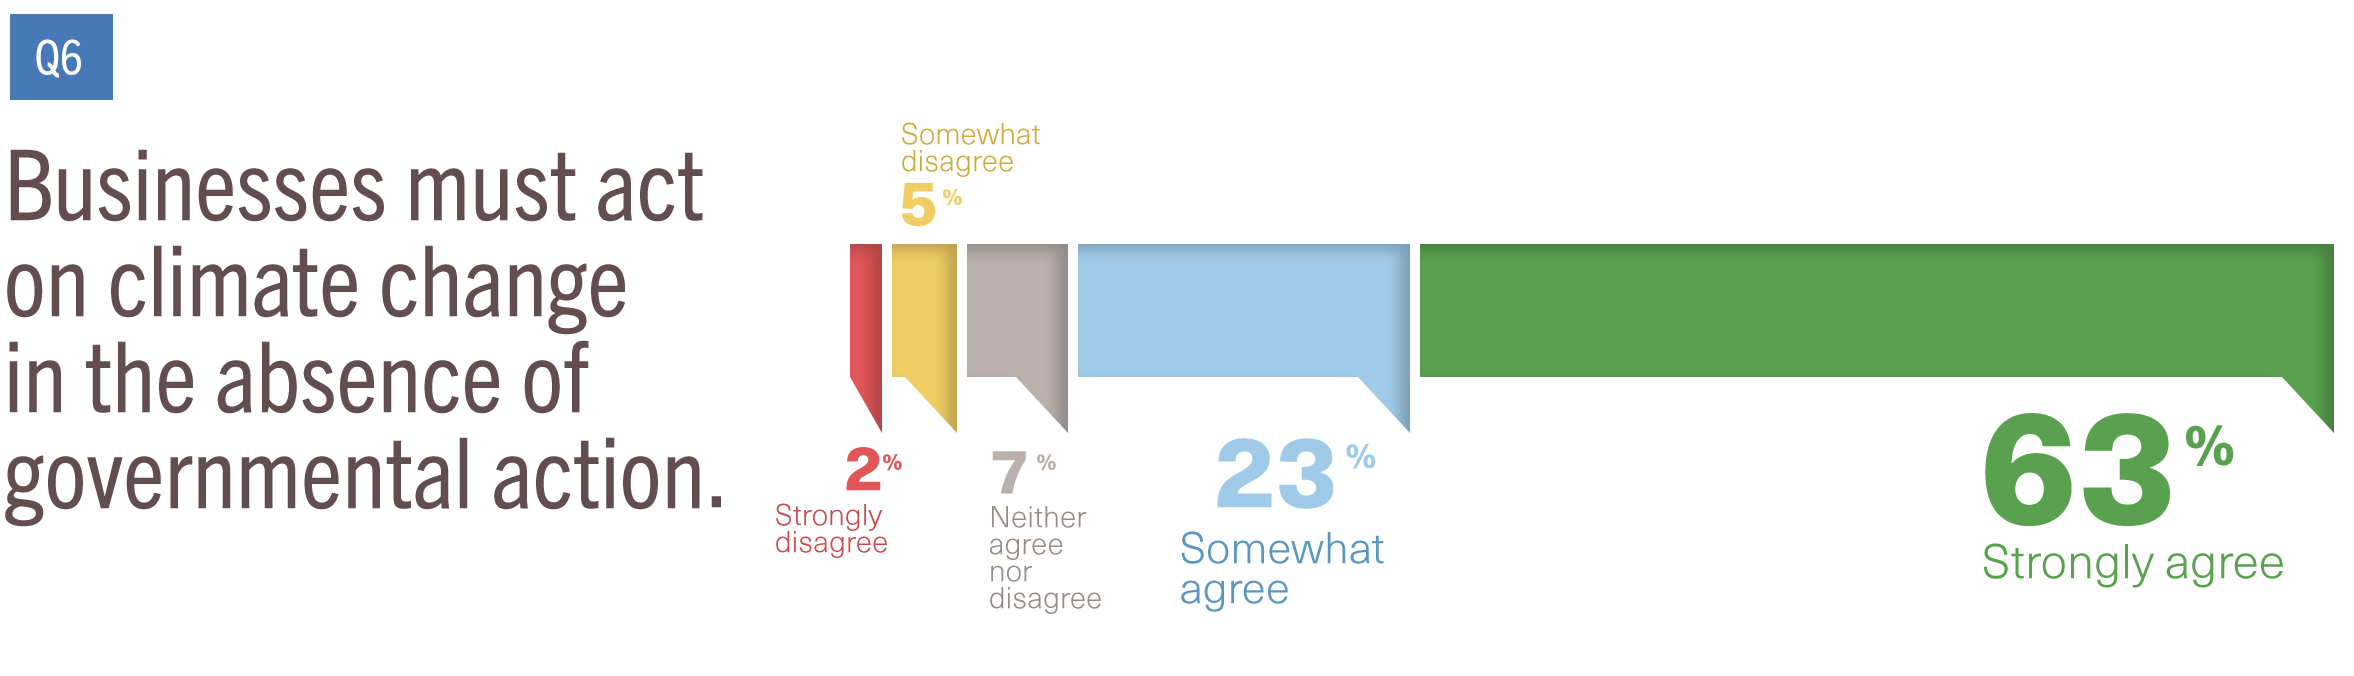 A chart showing the percentage of respondents who believe that business should act on climate regardless of government policy